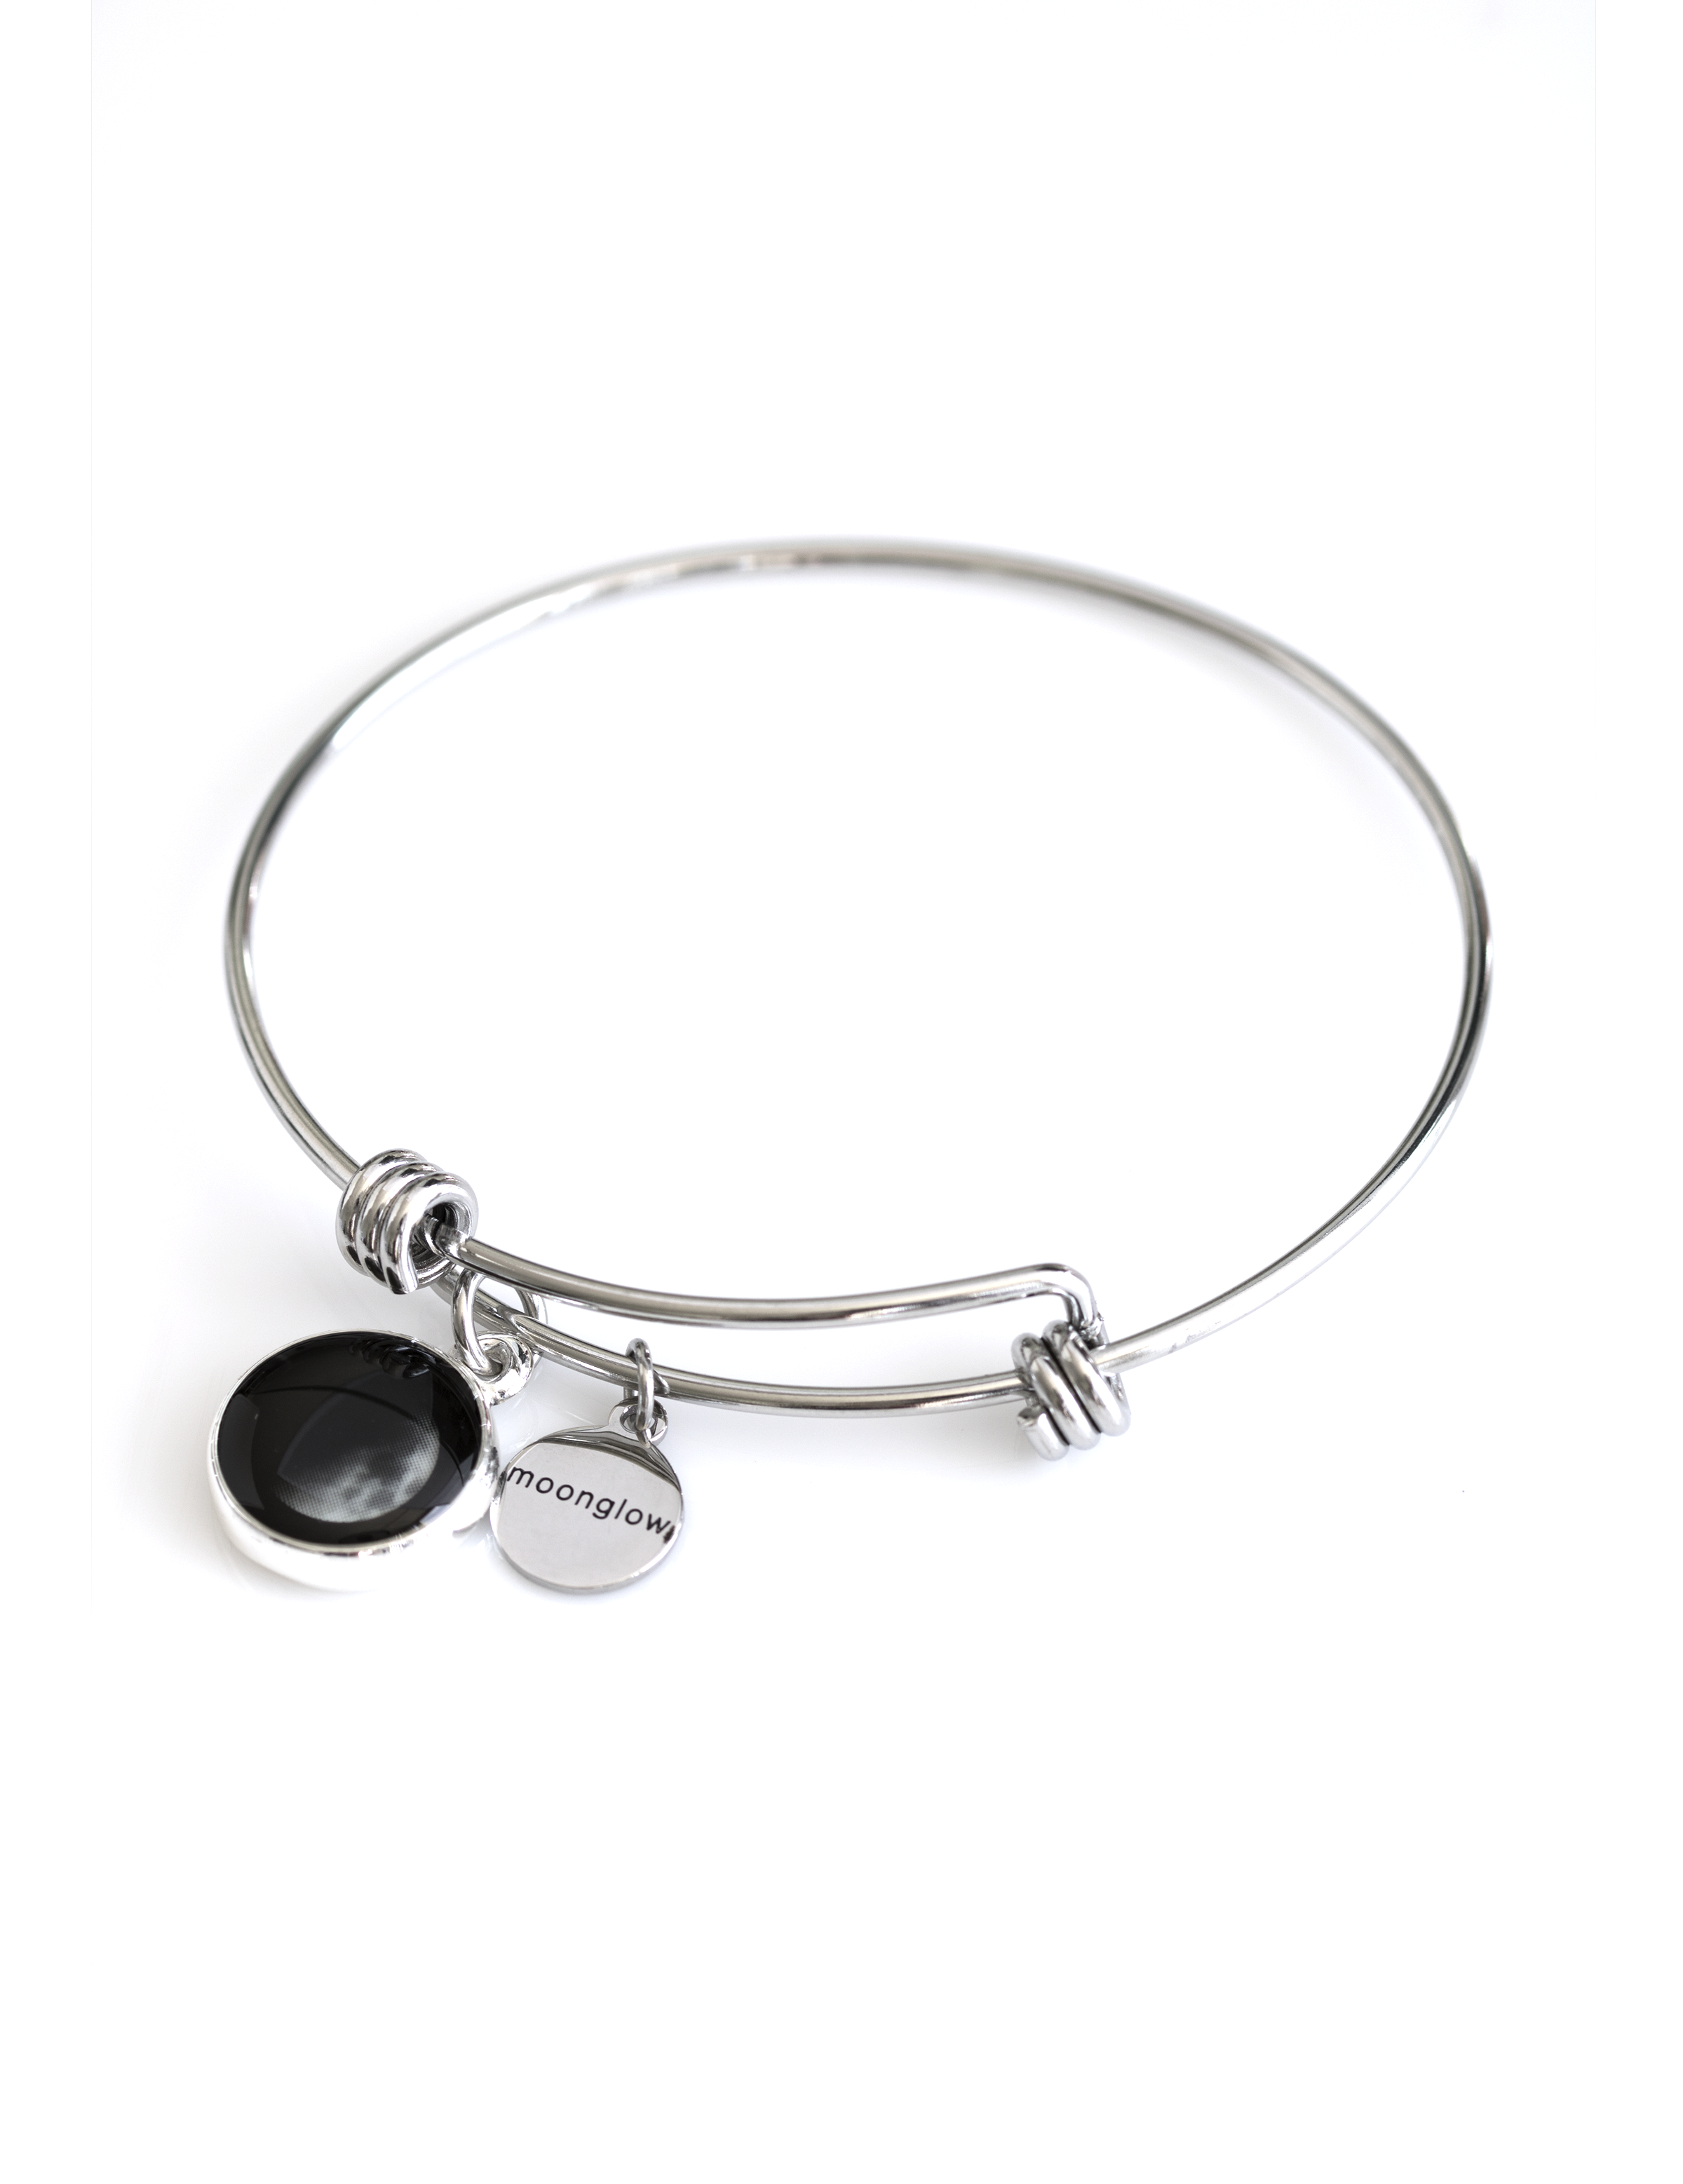 The Moonstock Moonglow Bracelet